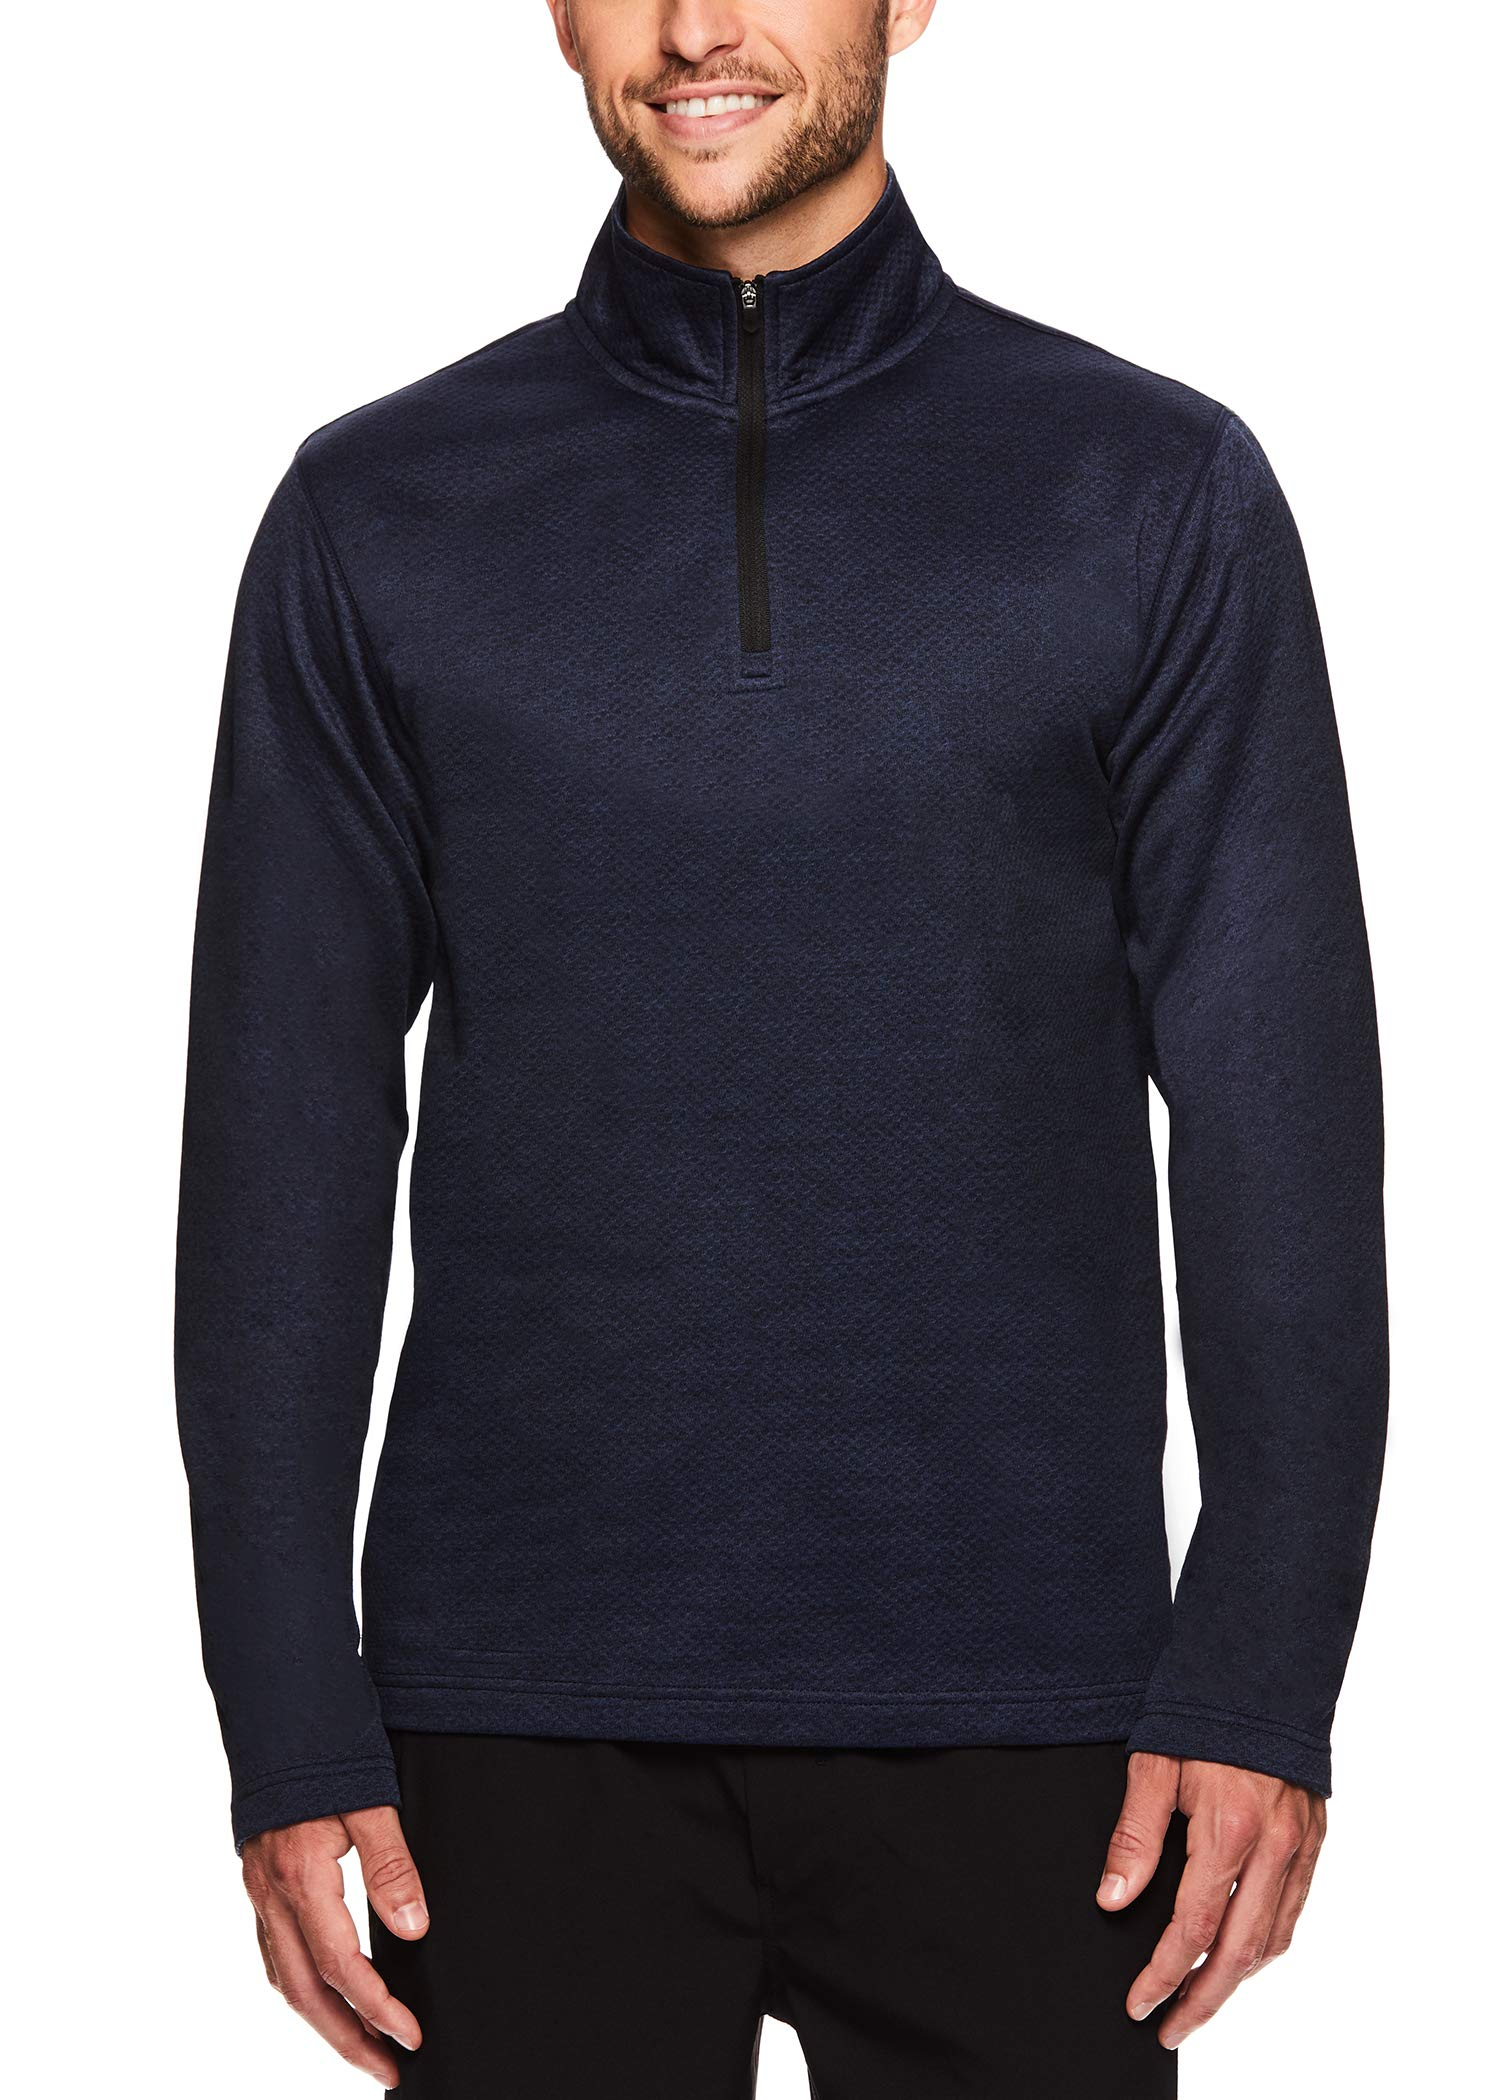 HEAD Men's 1/4 Zip Up Activewear Pullover Jacket - Long Sleeve Running & Workout Sweater - Showtime Navy Heather, Small